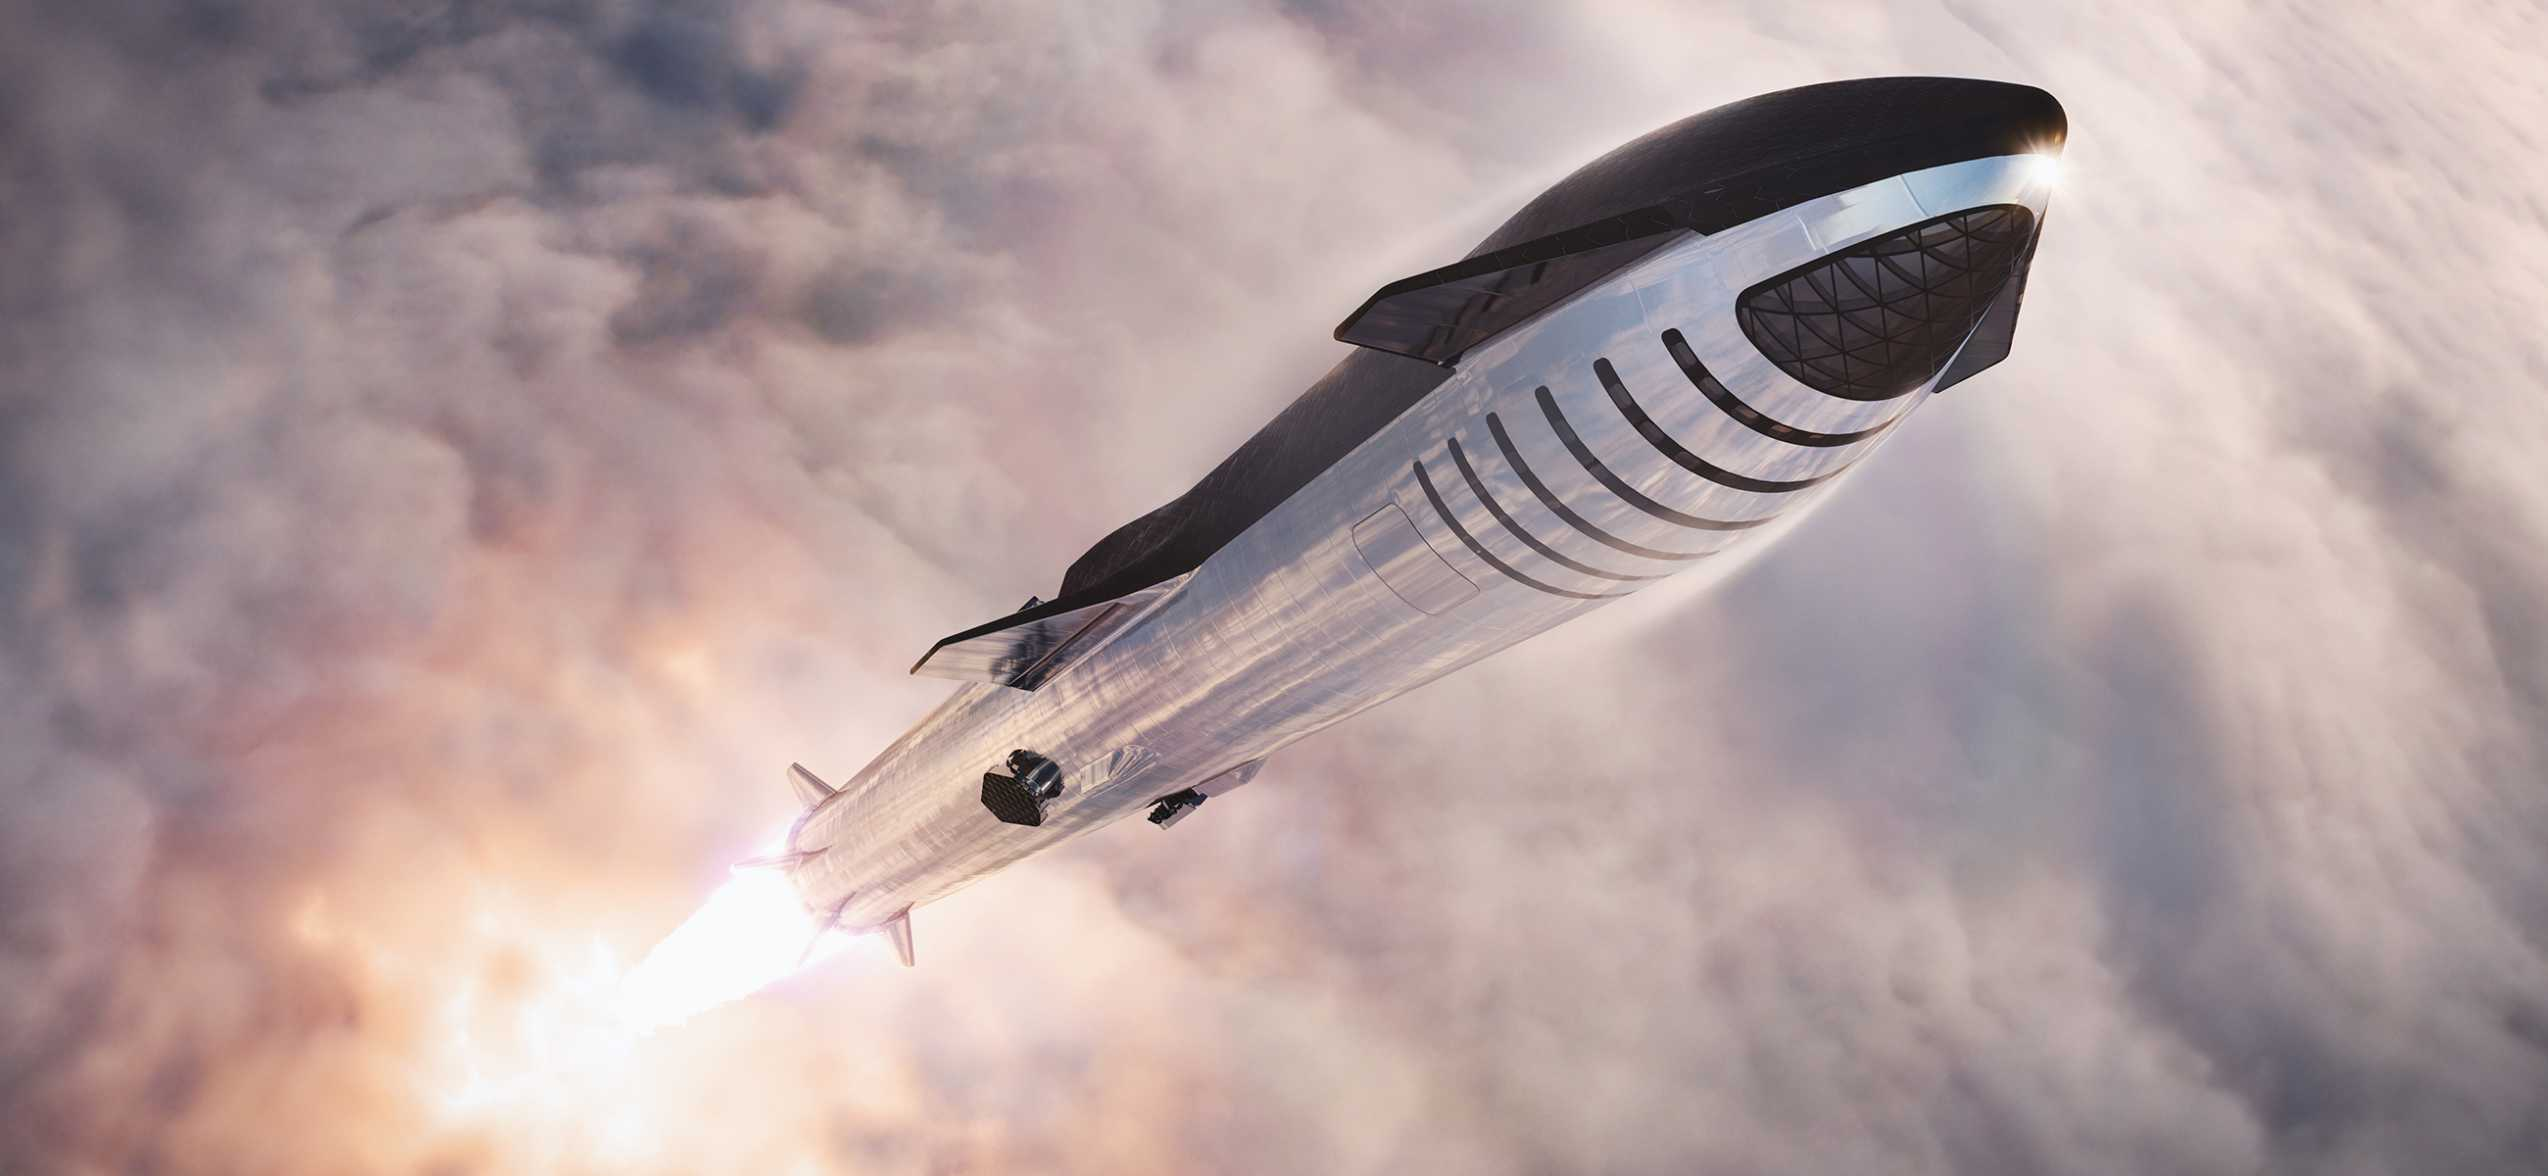 Starship Super Heavy launch render May 2020 (SpaceX) 1 (c)